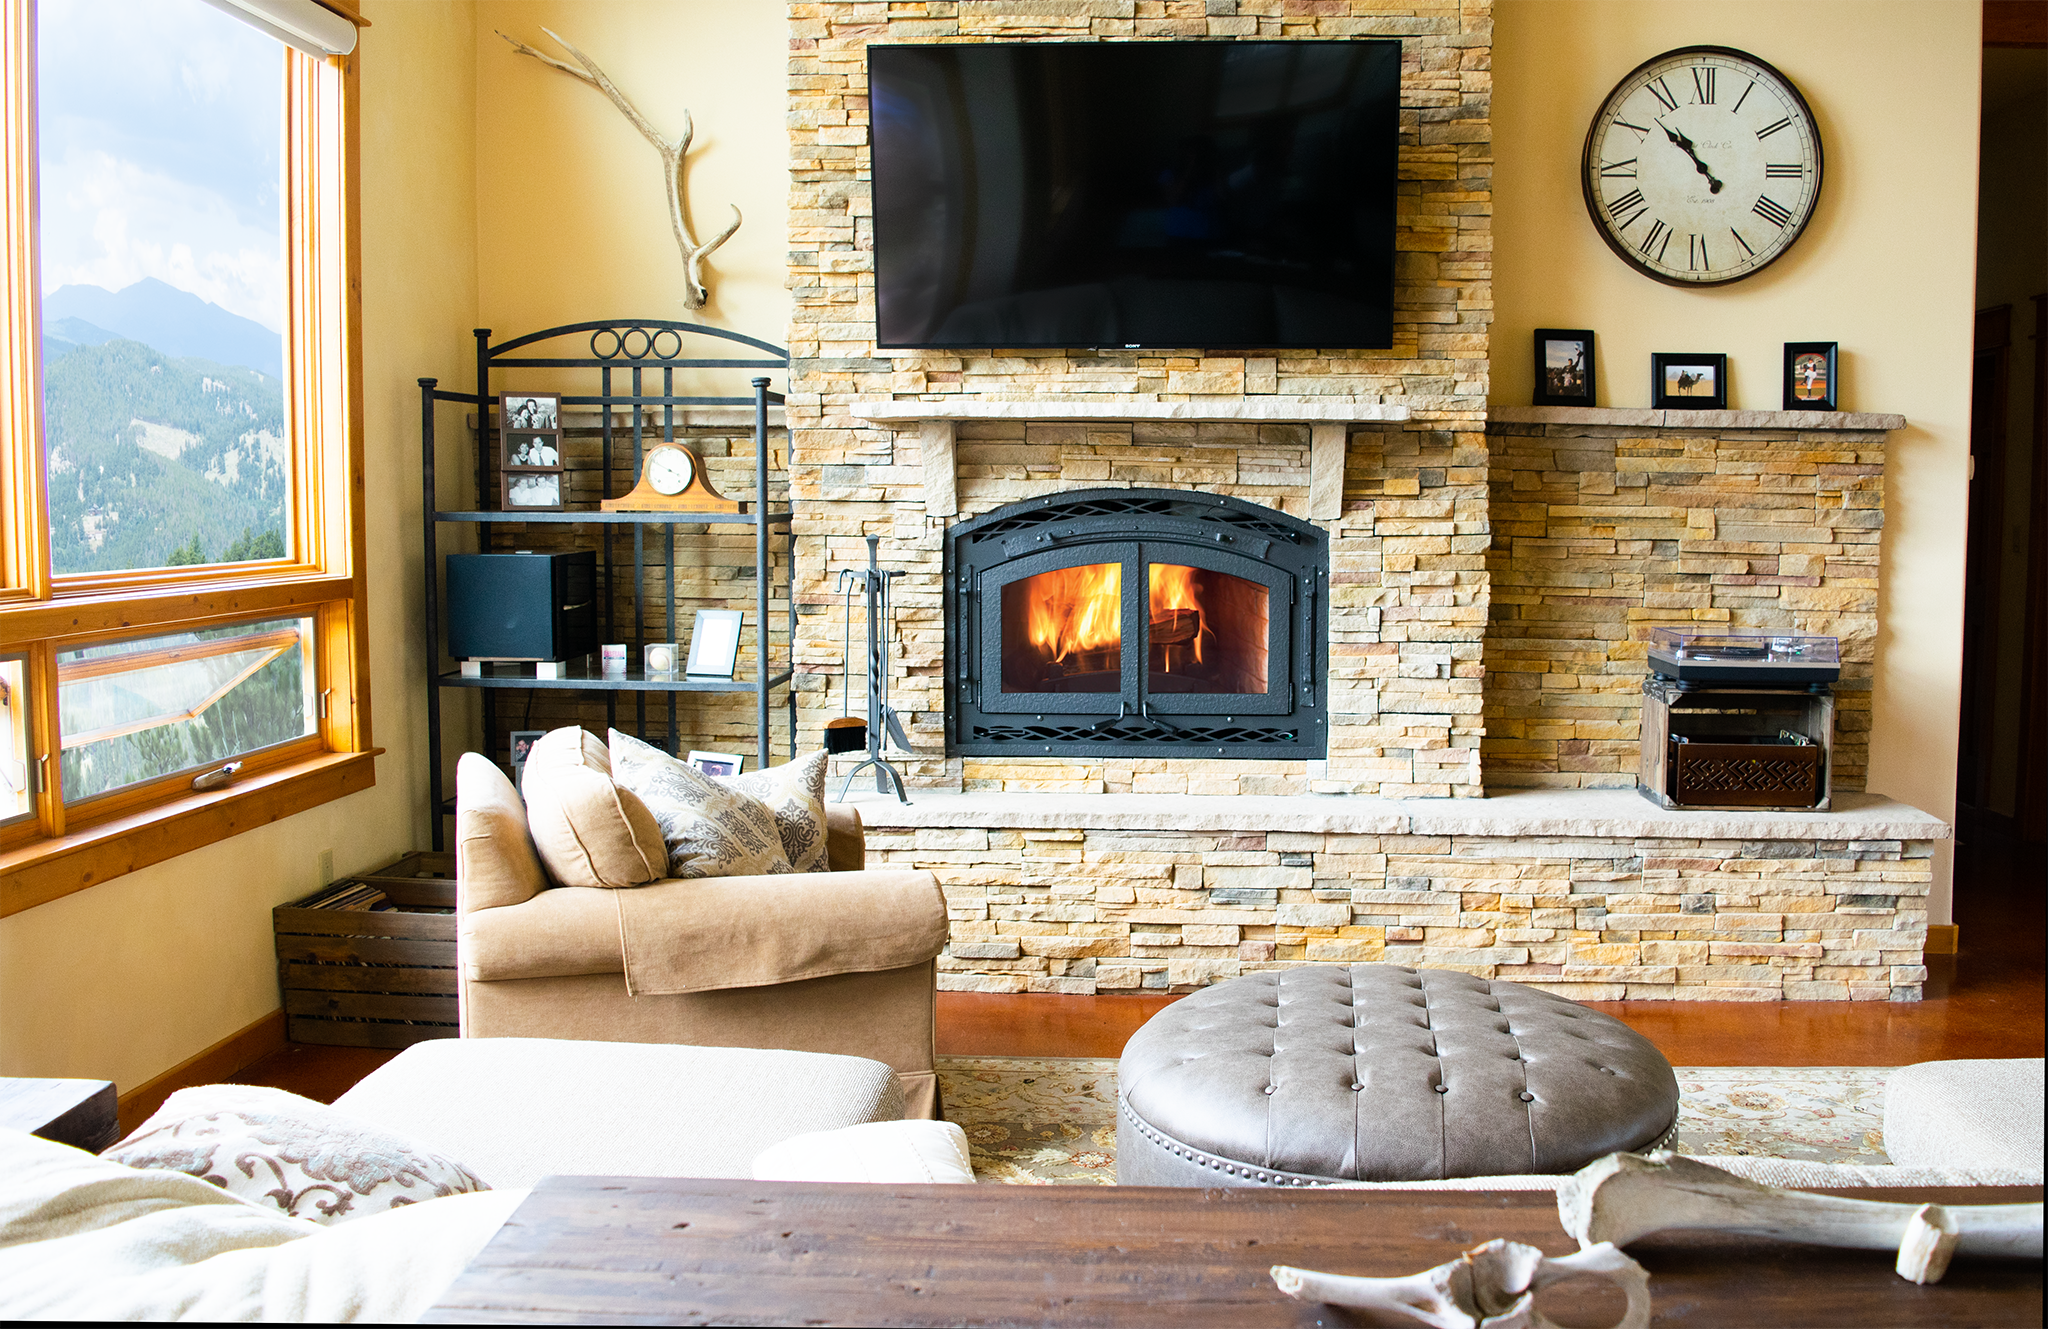 A large wood burning fireplace in a modern Colorado mountain home.